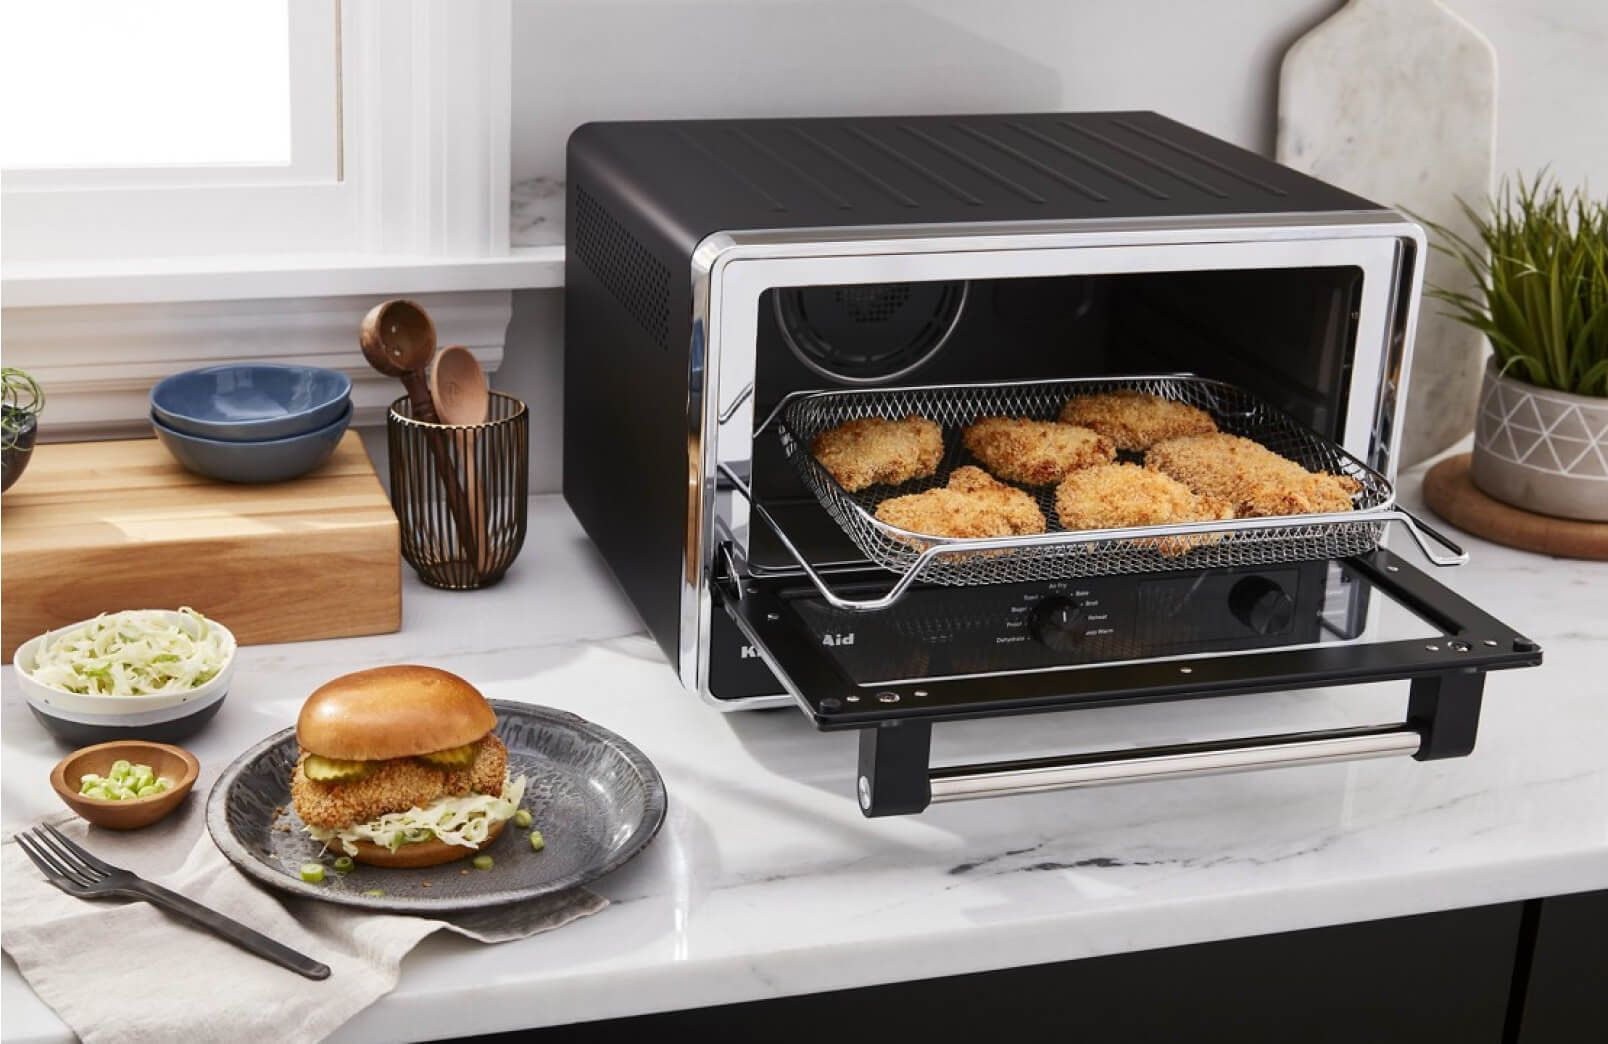 A KitchenAid® Digital Countertop Oven with Air Fry frying chicken.